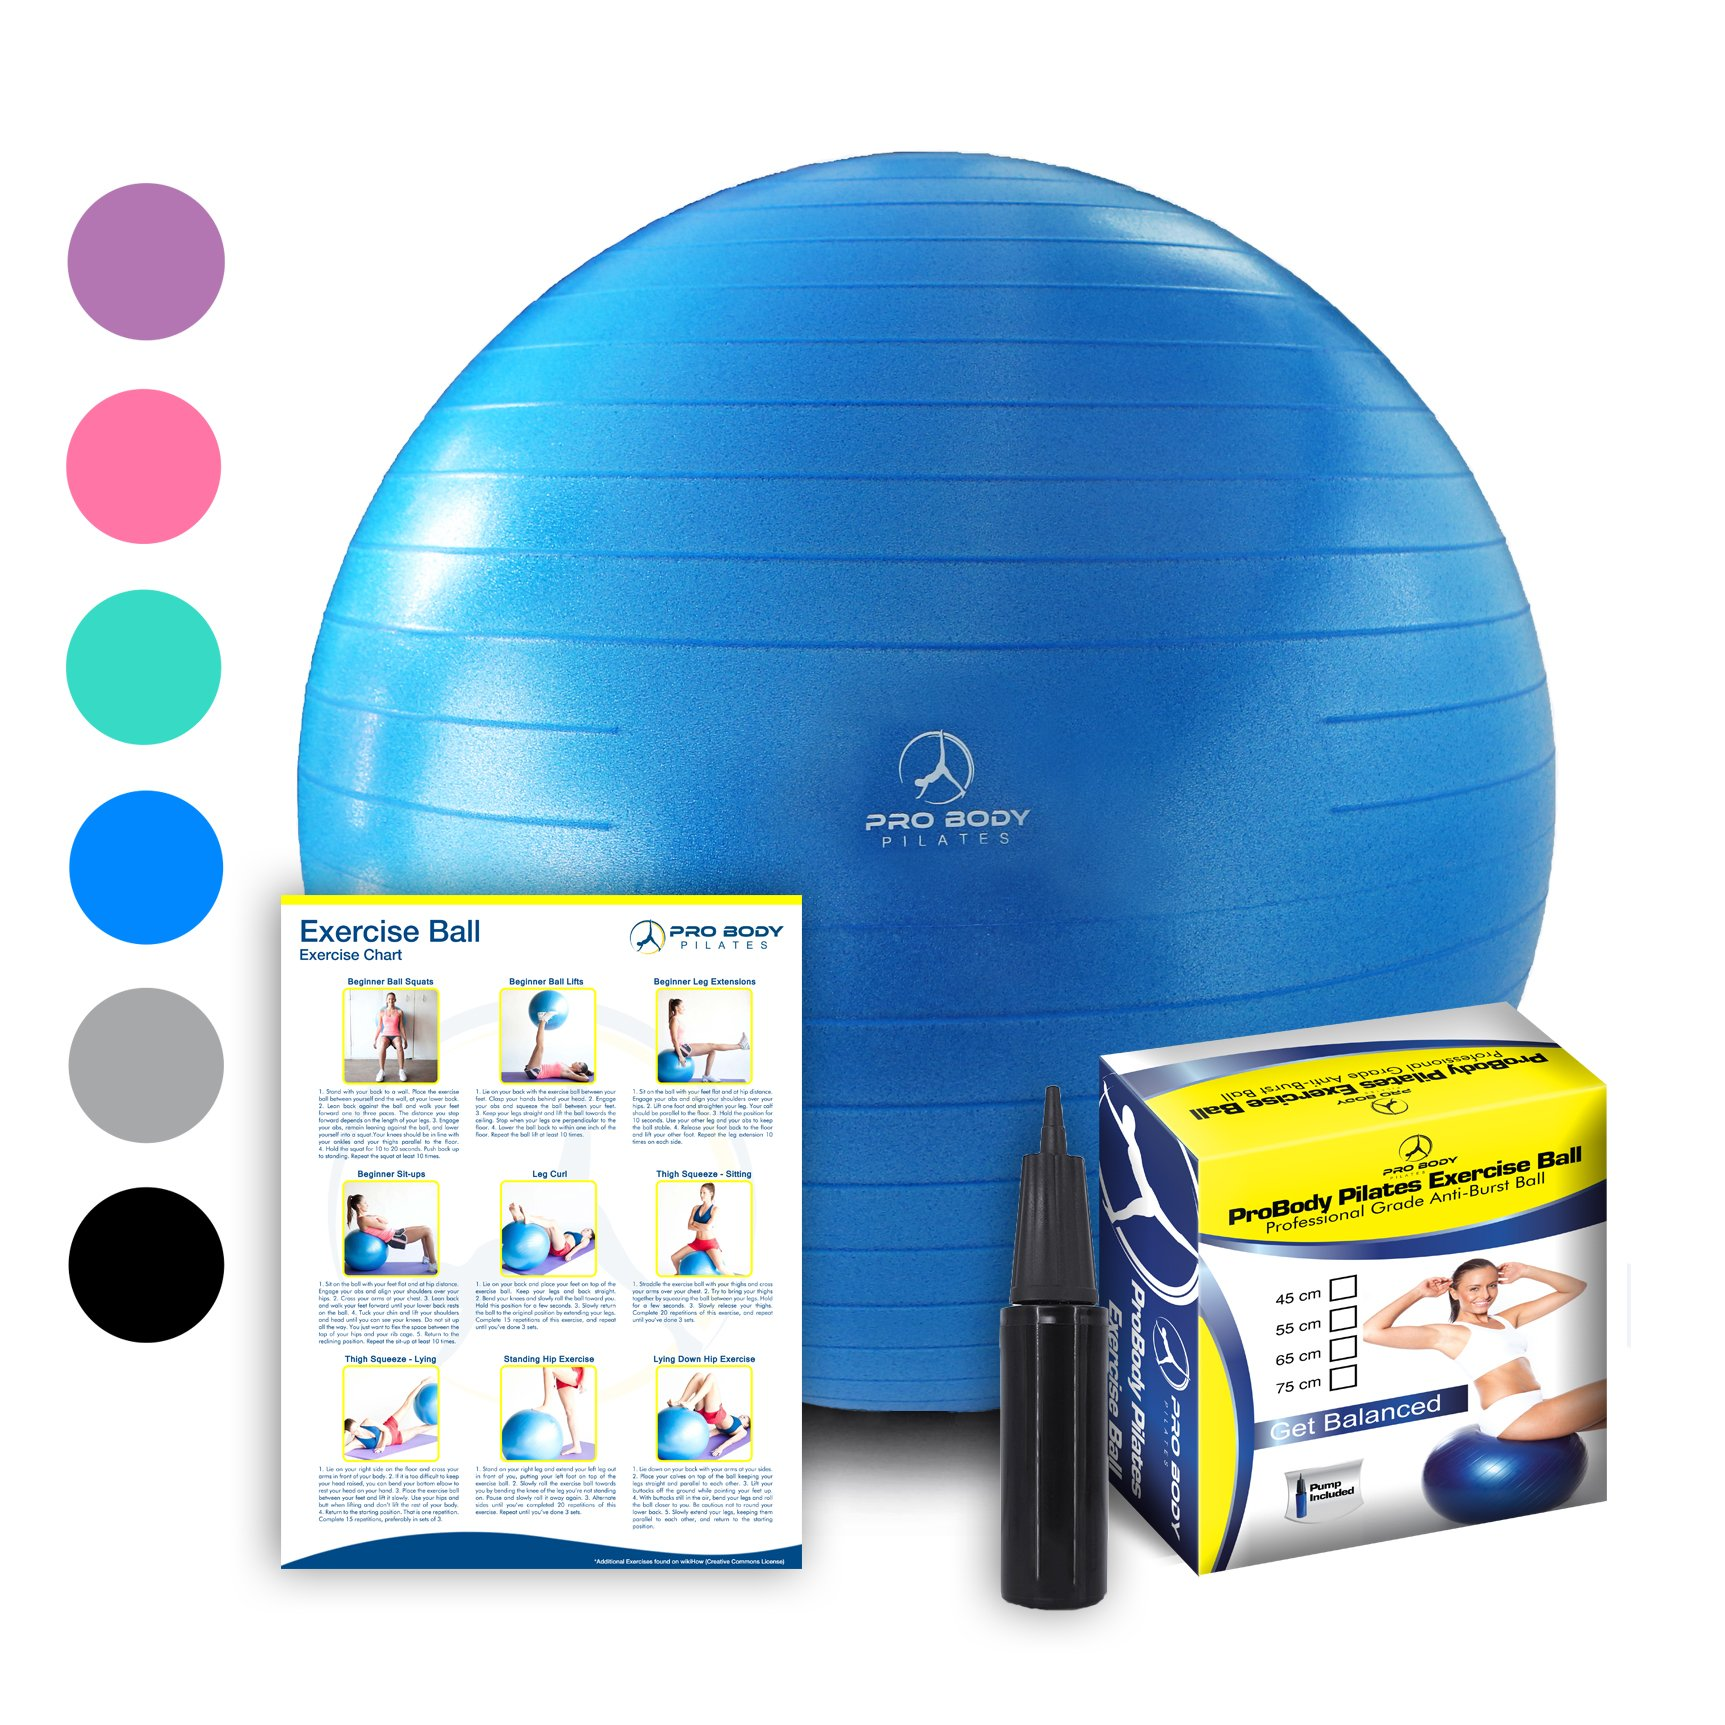 Exercise Ball - Professional Grade Anti-Burst Fitness, Balance Ball for Pilates, Yoga, Birthing, Stability Gym Training and Physical Therapy (Blue, 55cm)